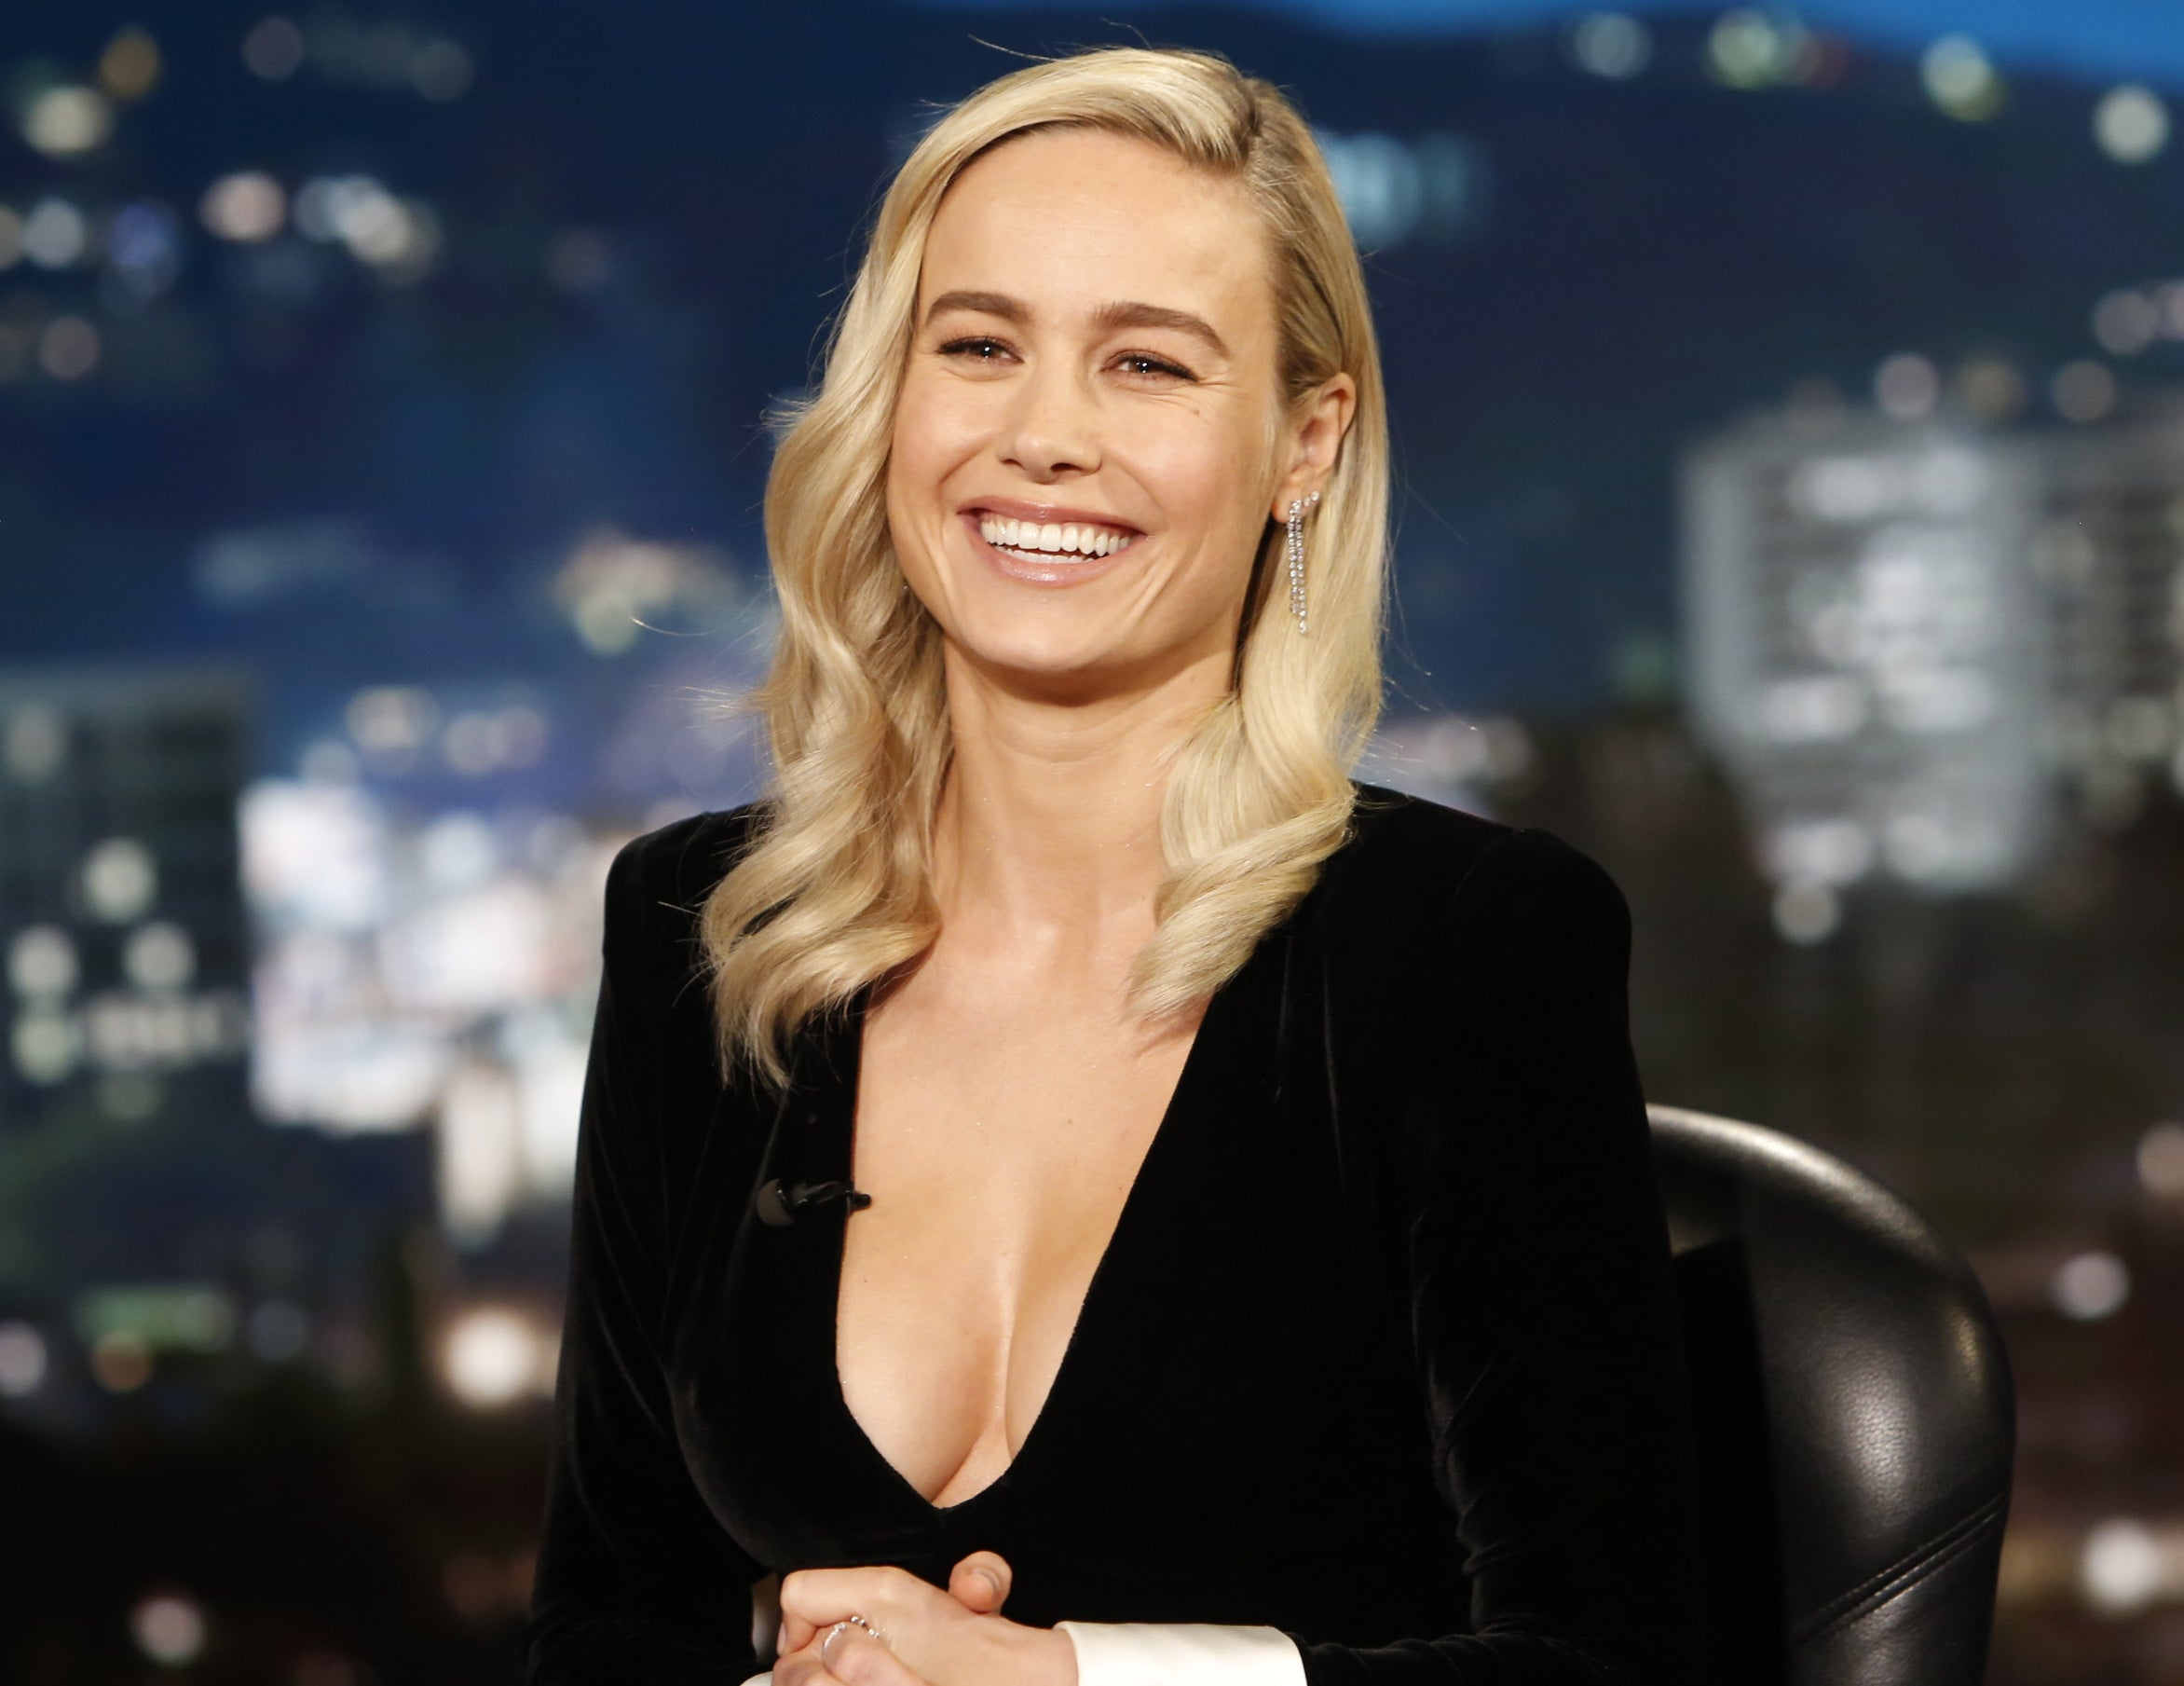 Brie smiles big while sitting and wearing a black dress with a plunging neckline